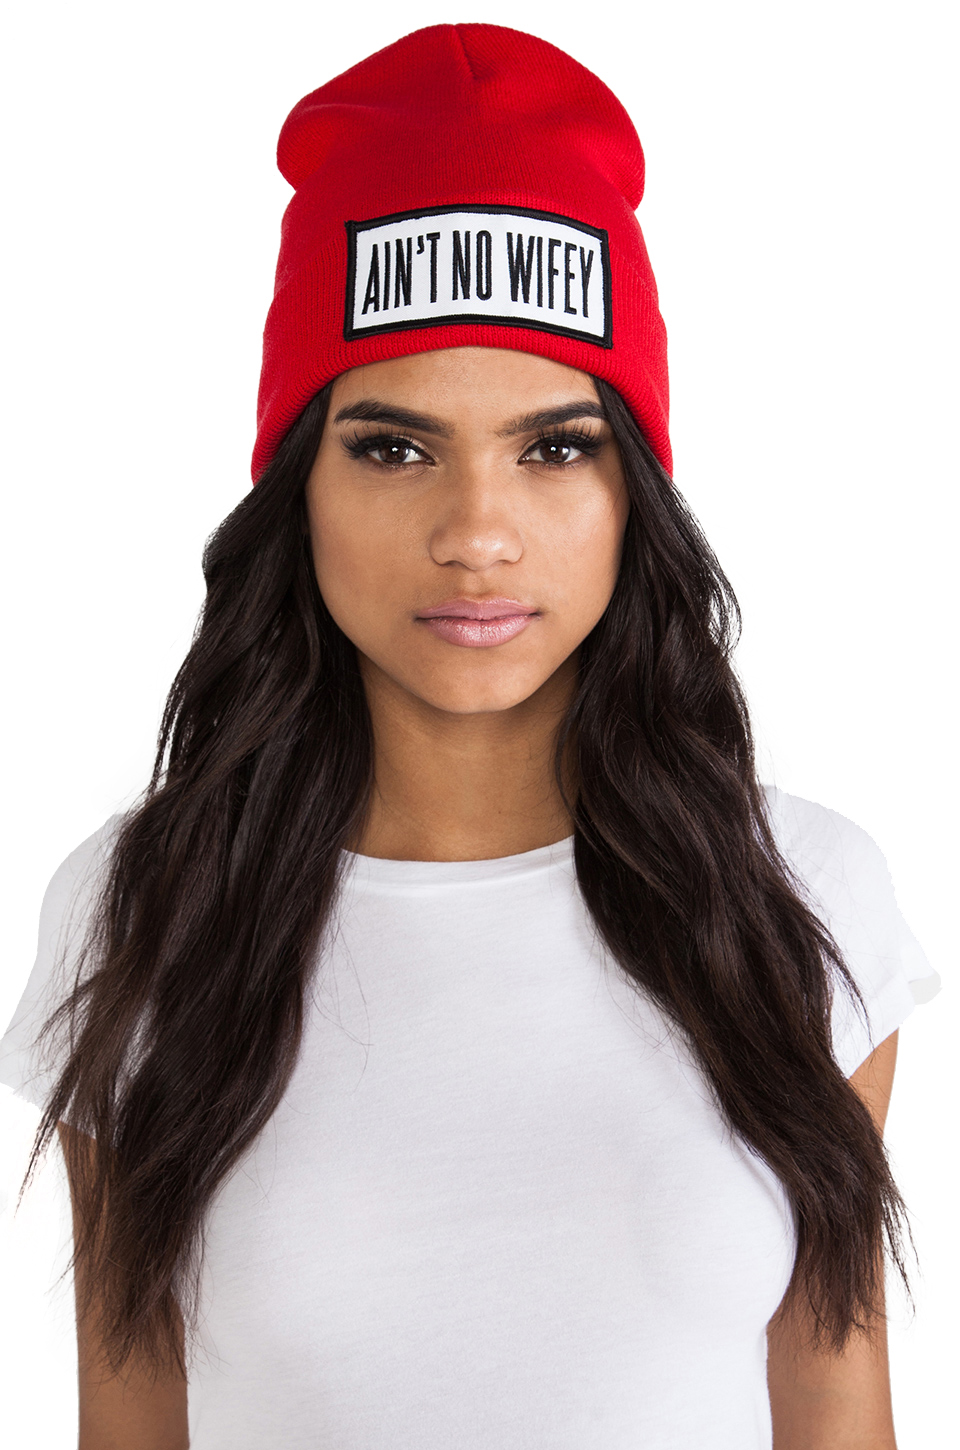 Dimepiece ain't no wifey beanie in red from revolveclothing.com